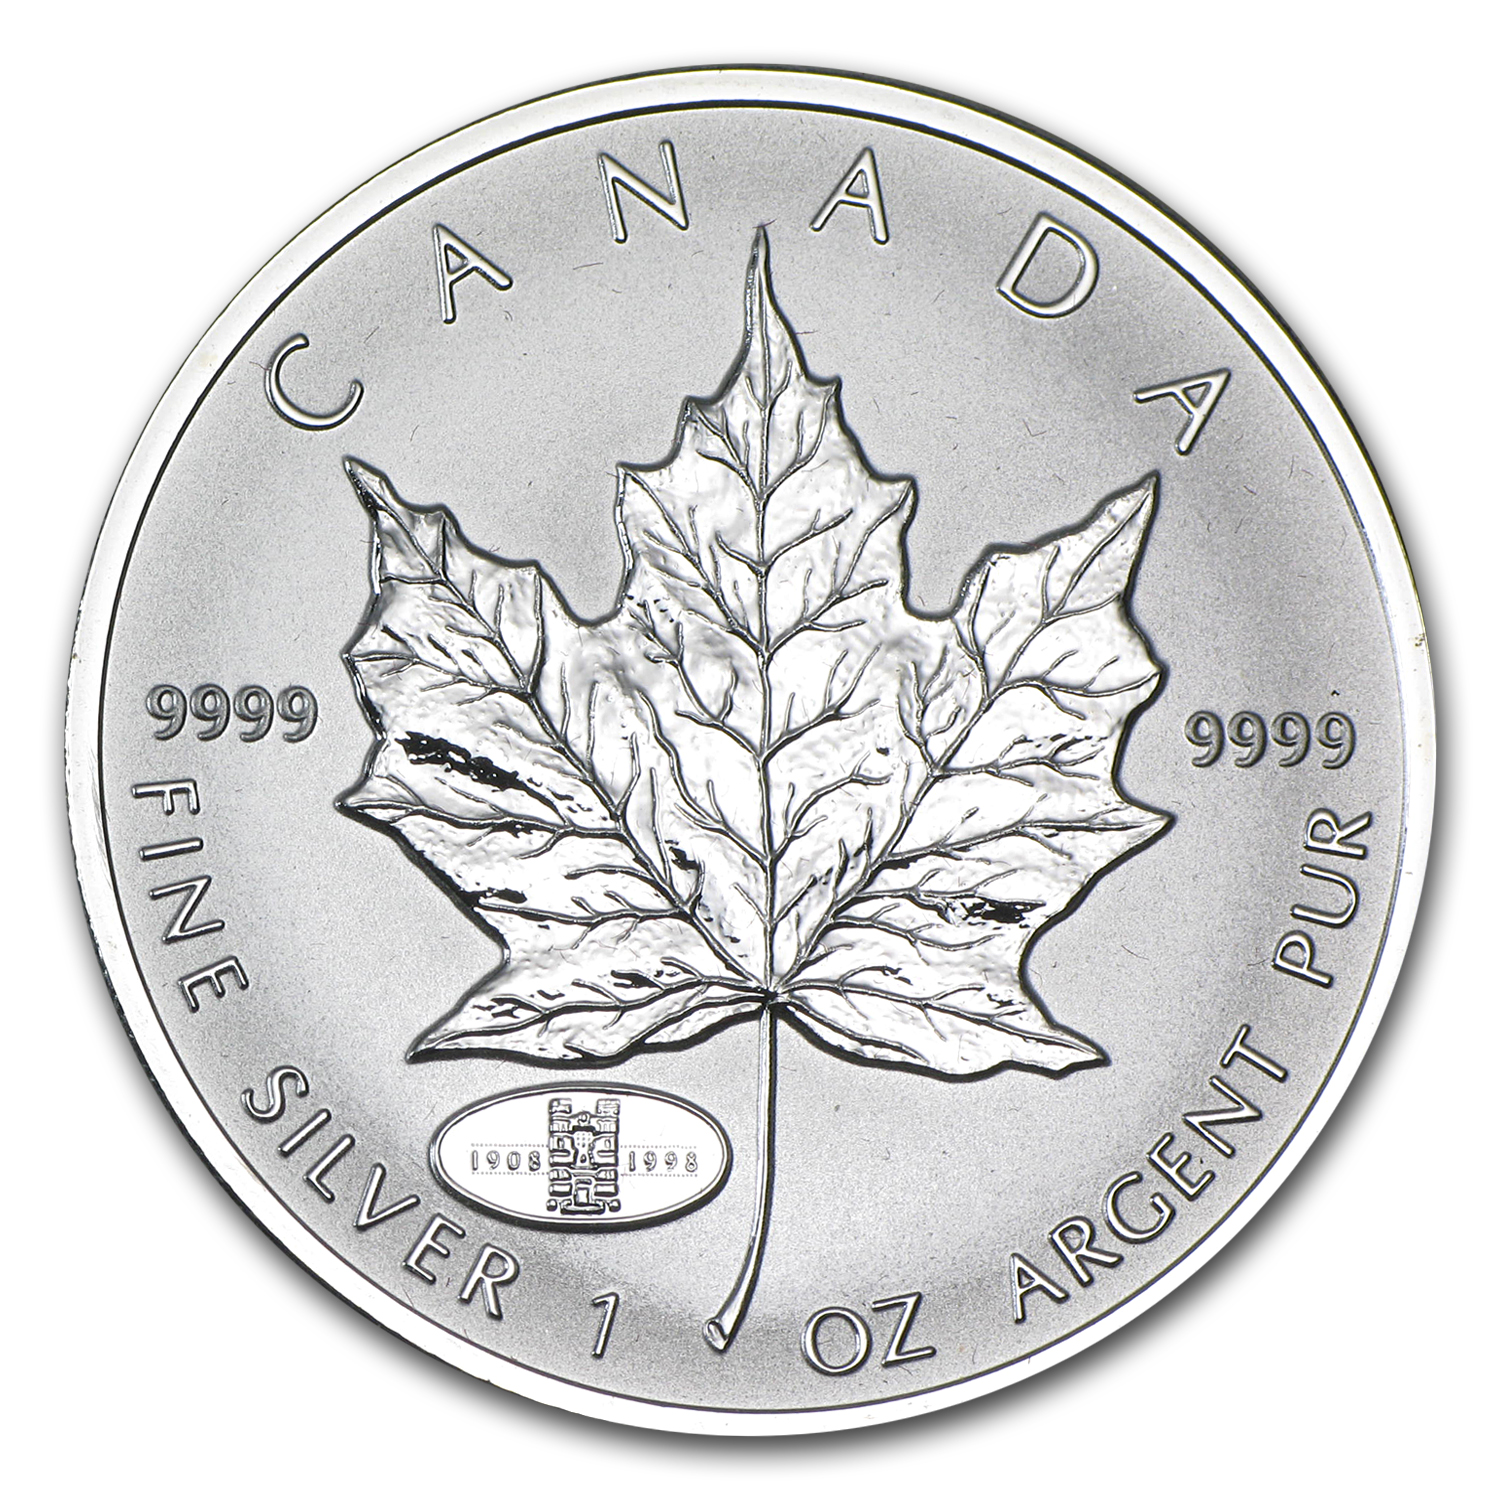 1998 Canada 1 oz Silver Maple Leaf RCM 90th Anniversary Privy